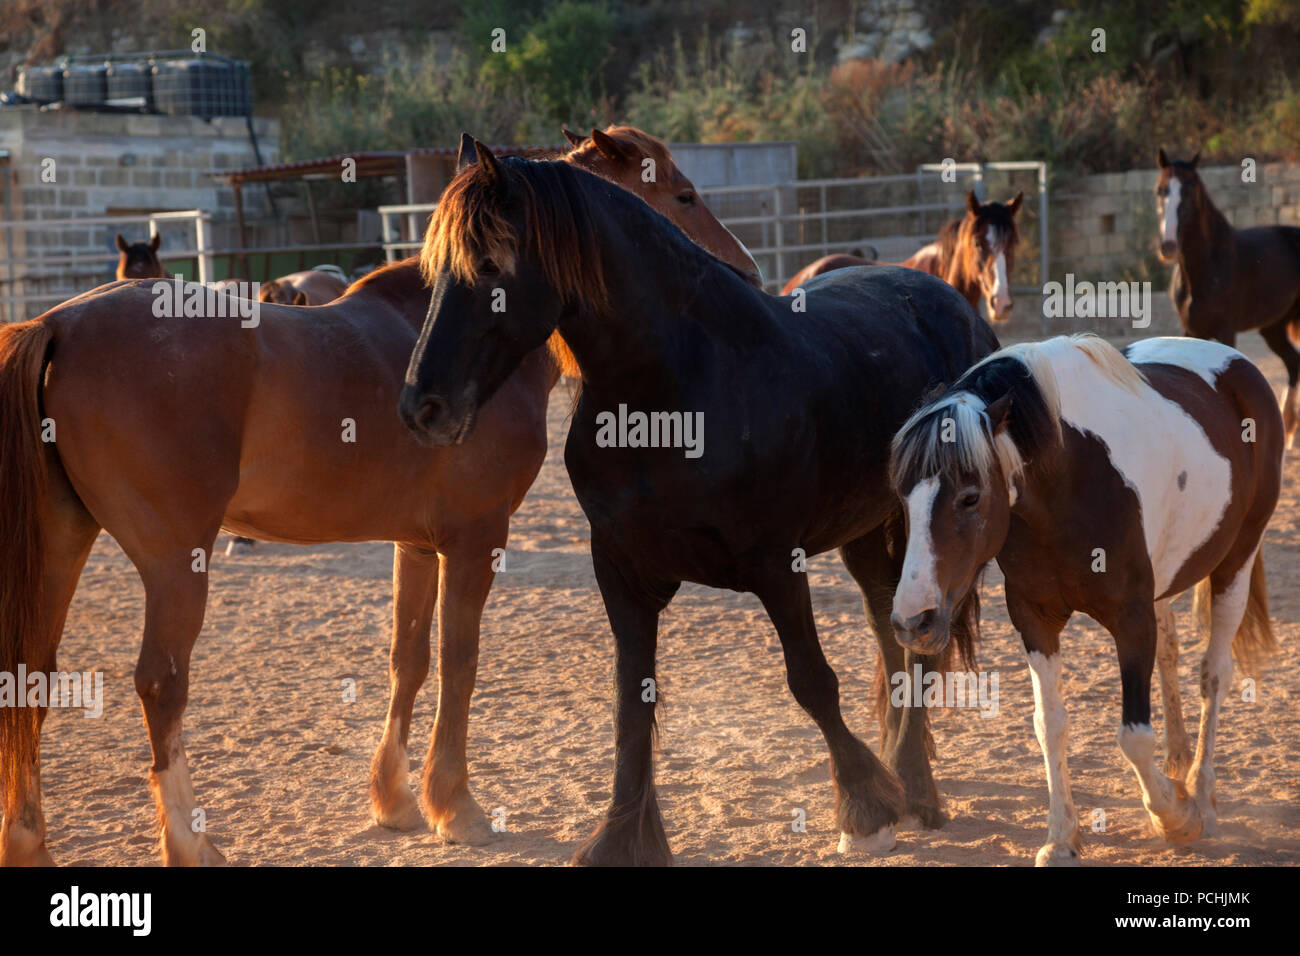 Horses milling around the paddock at a horse farm. - Stock Image